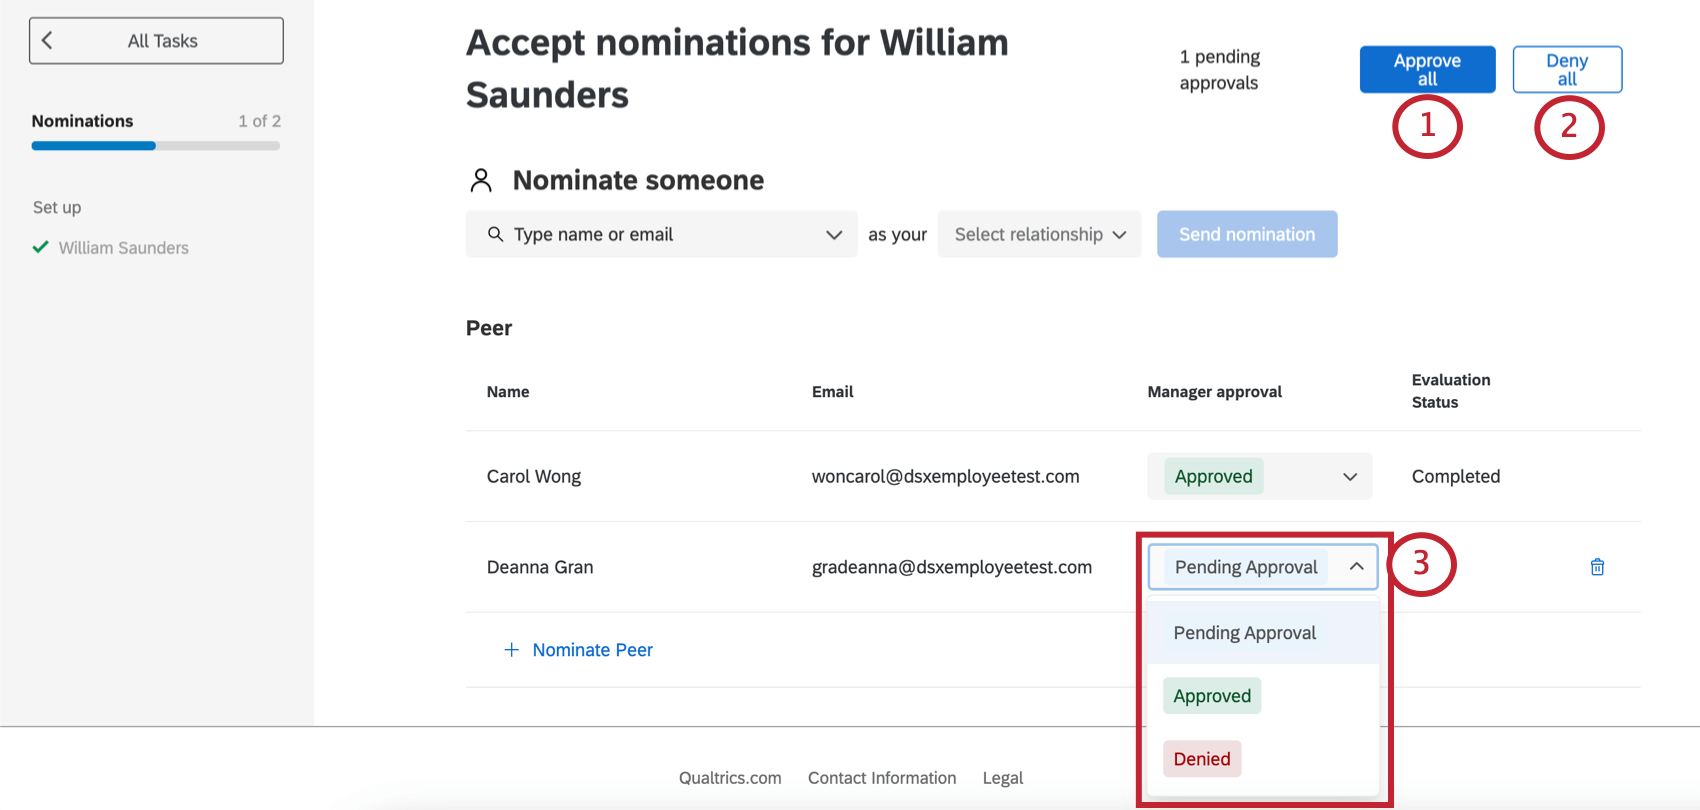 Process for approving nominations